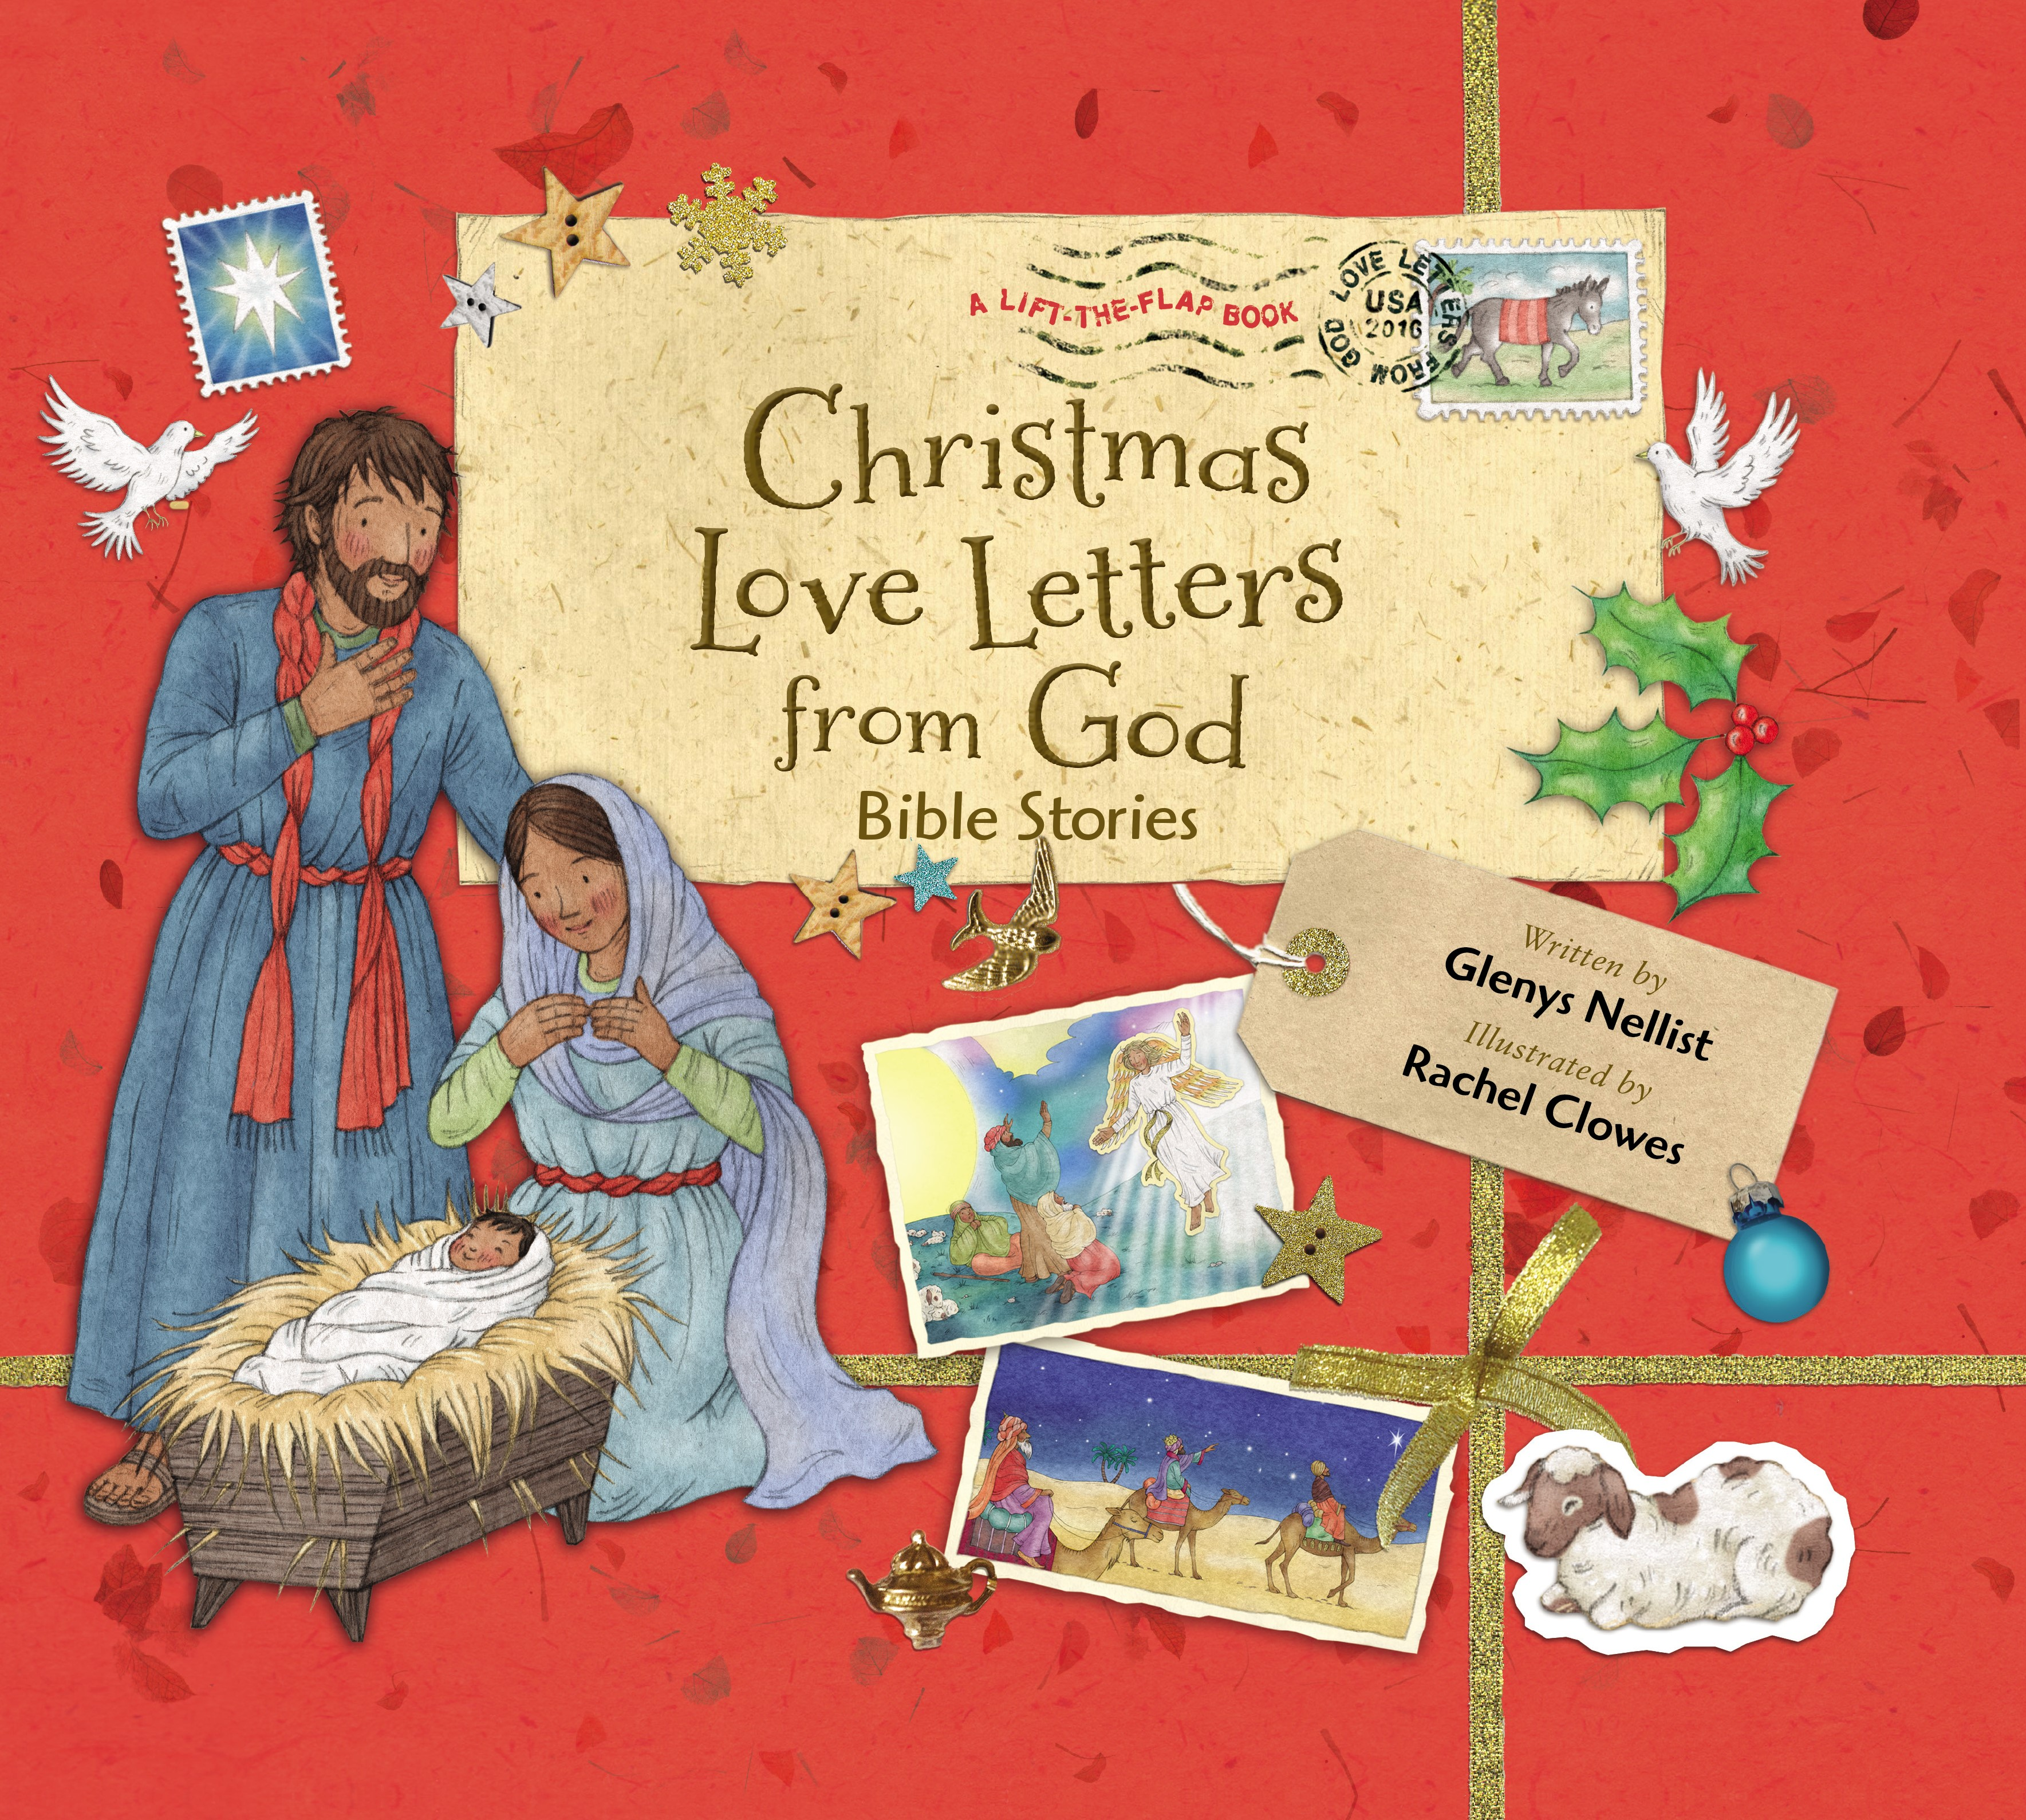 Discover The Birth Of Jesus In Christmas Love Letters from God Bible Stories